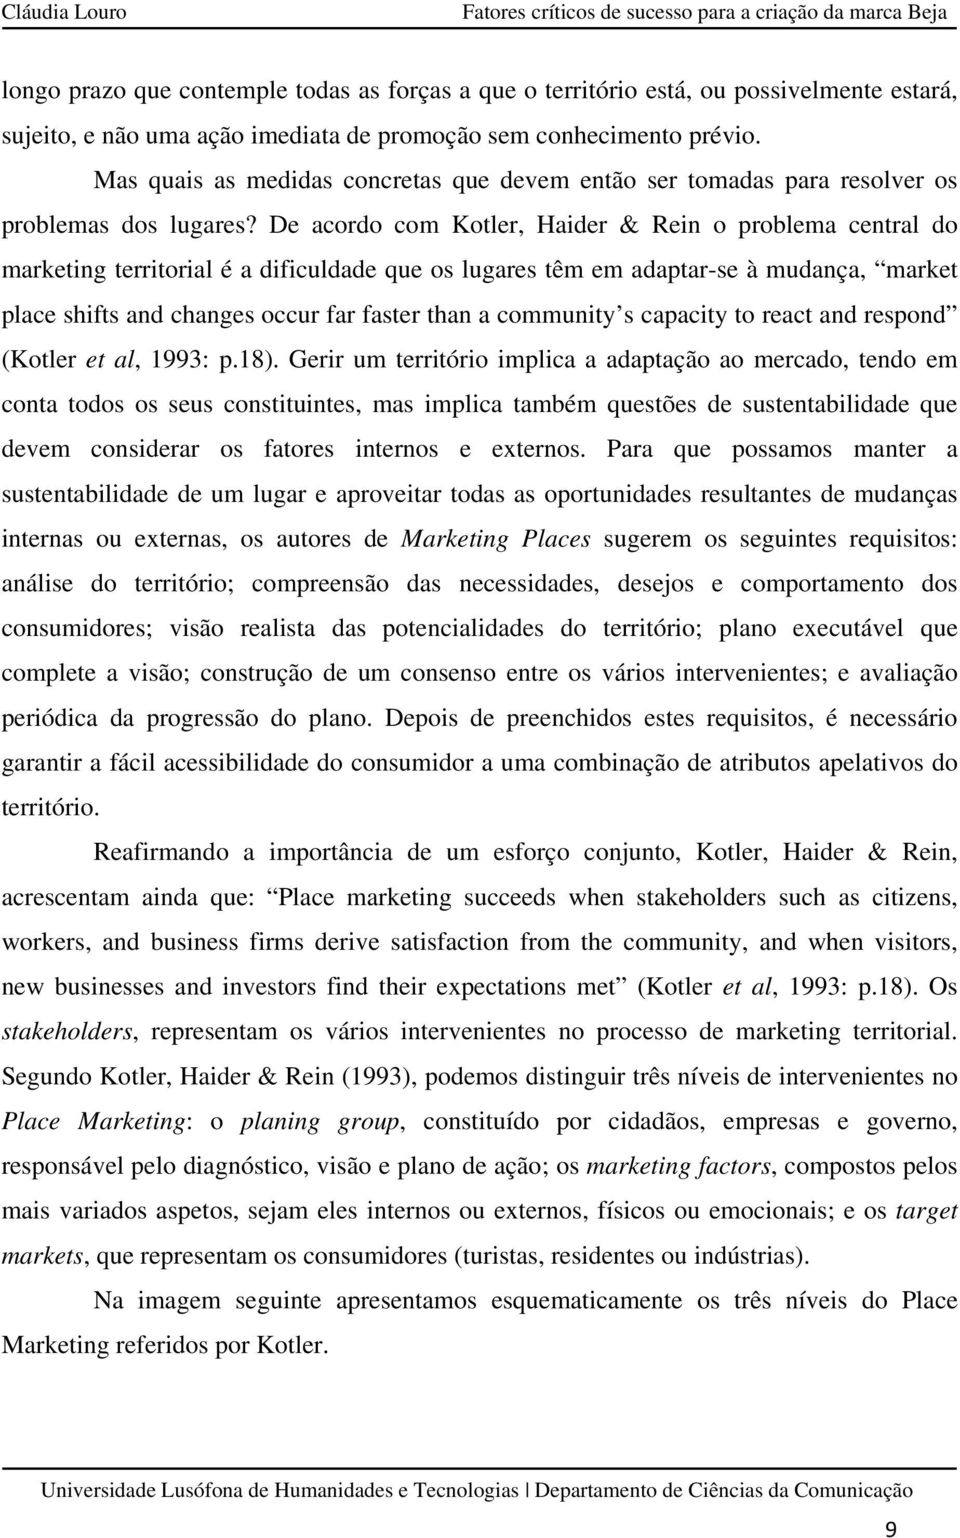 De acordo com Kotler, Haider & Rein o problema central do marketing territorial é a dificuldade que os lugares têm em adaptar-se à mudança, market place shifts and changes occur far faster than a